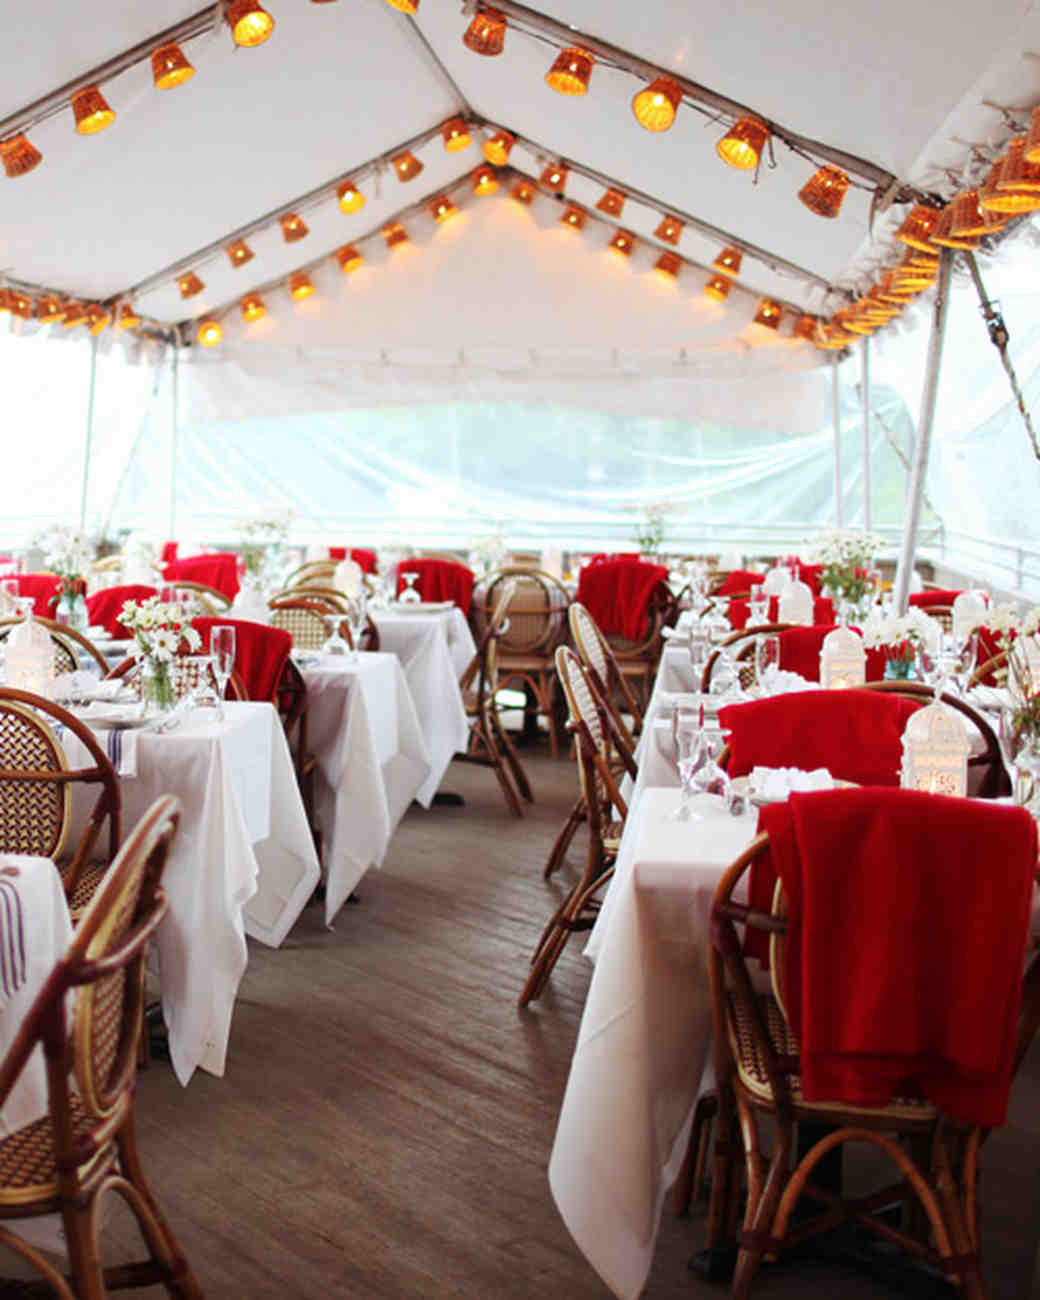 44 great wedding reception venues on the east coast for East coast beach wedding locations